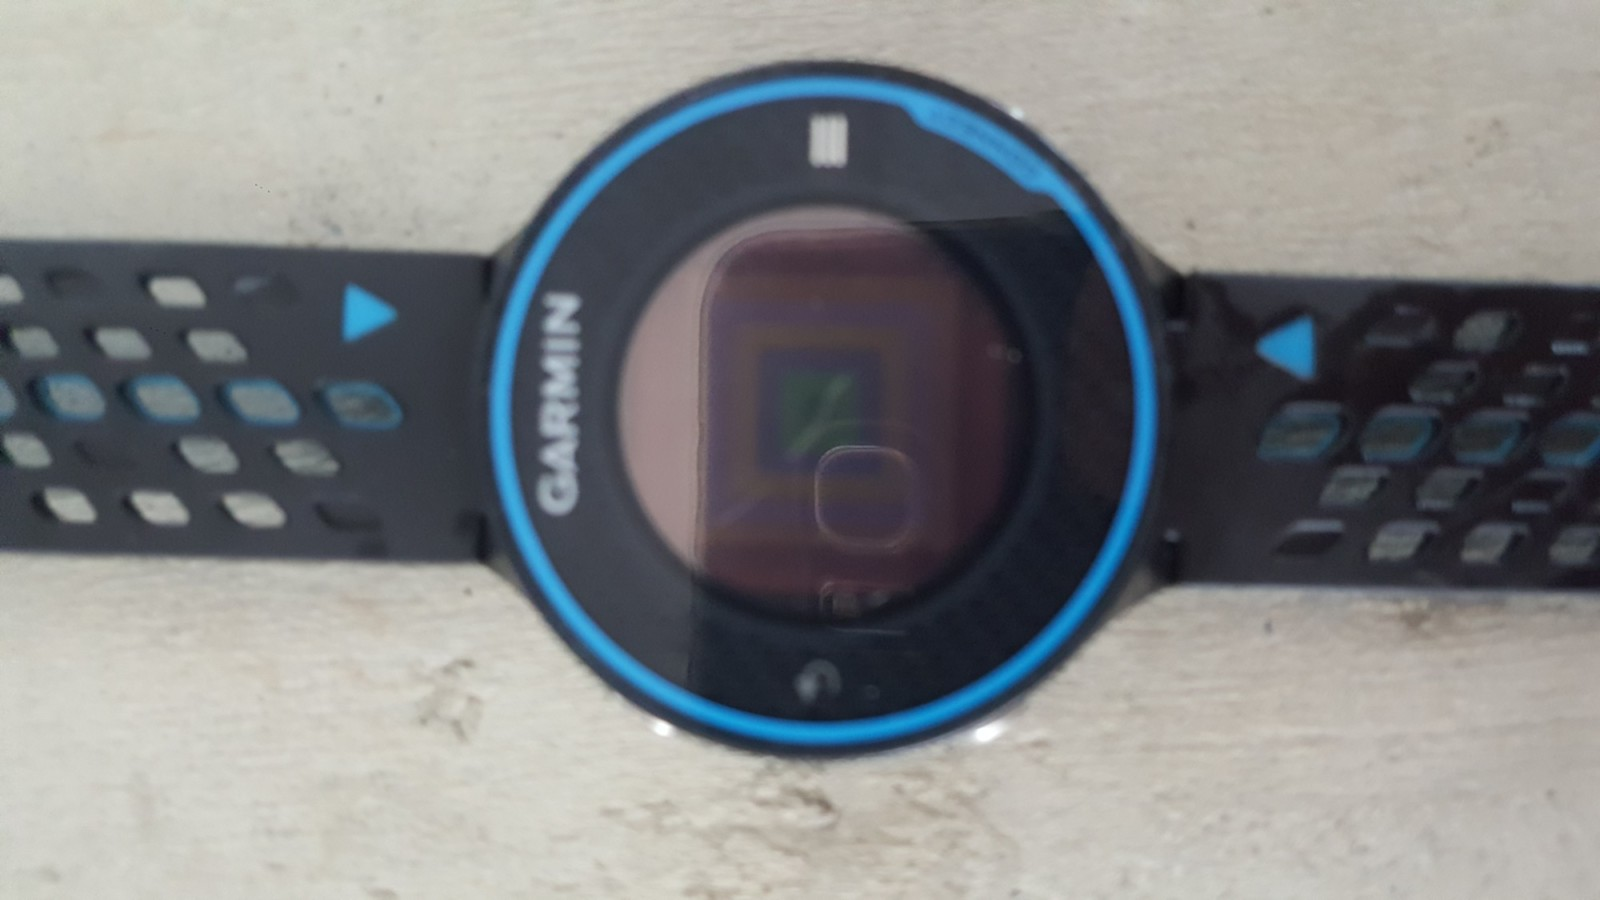 Your GPS watch will (most likely) continue to work fine